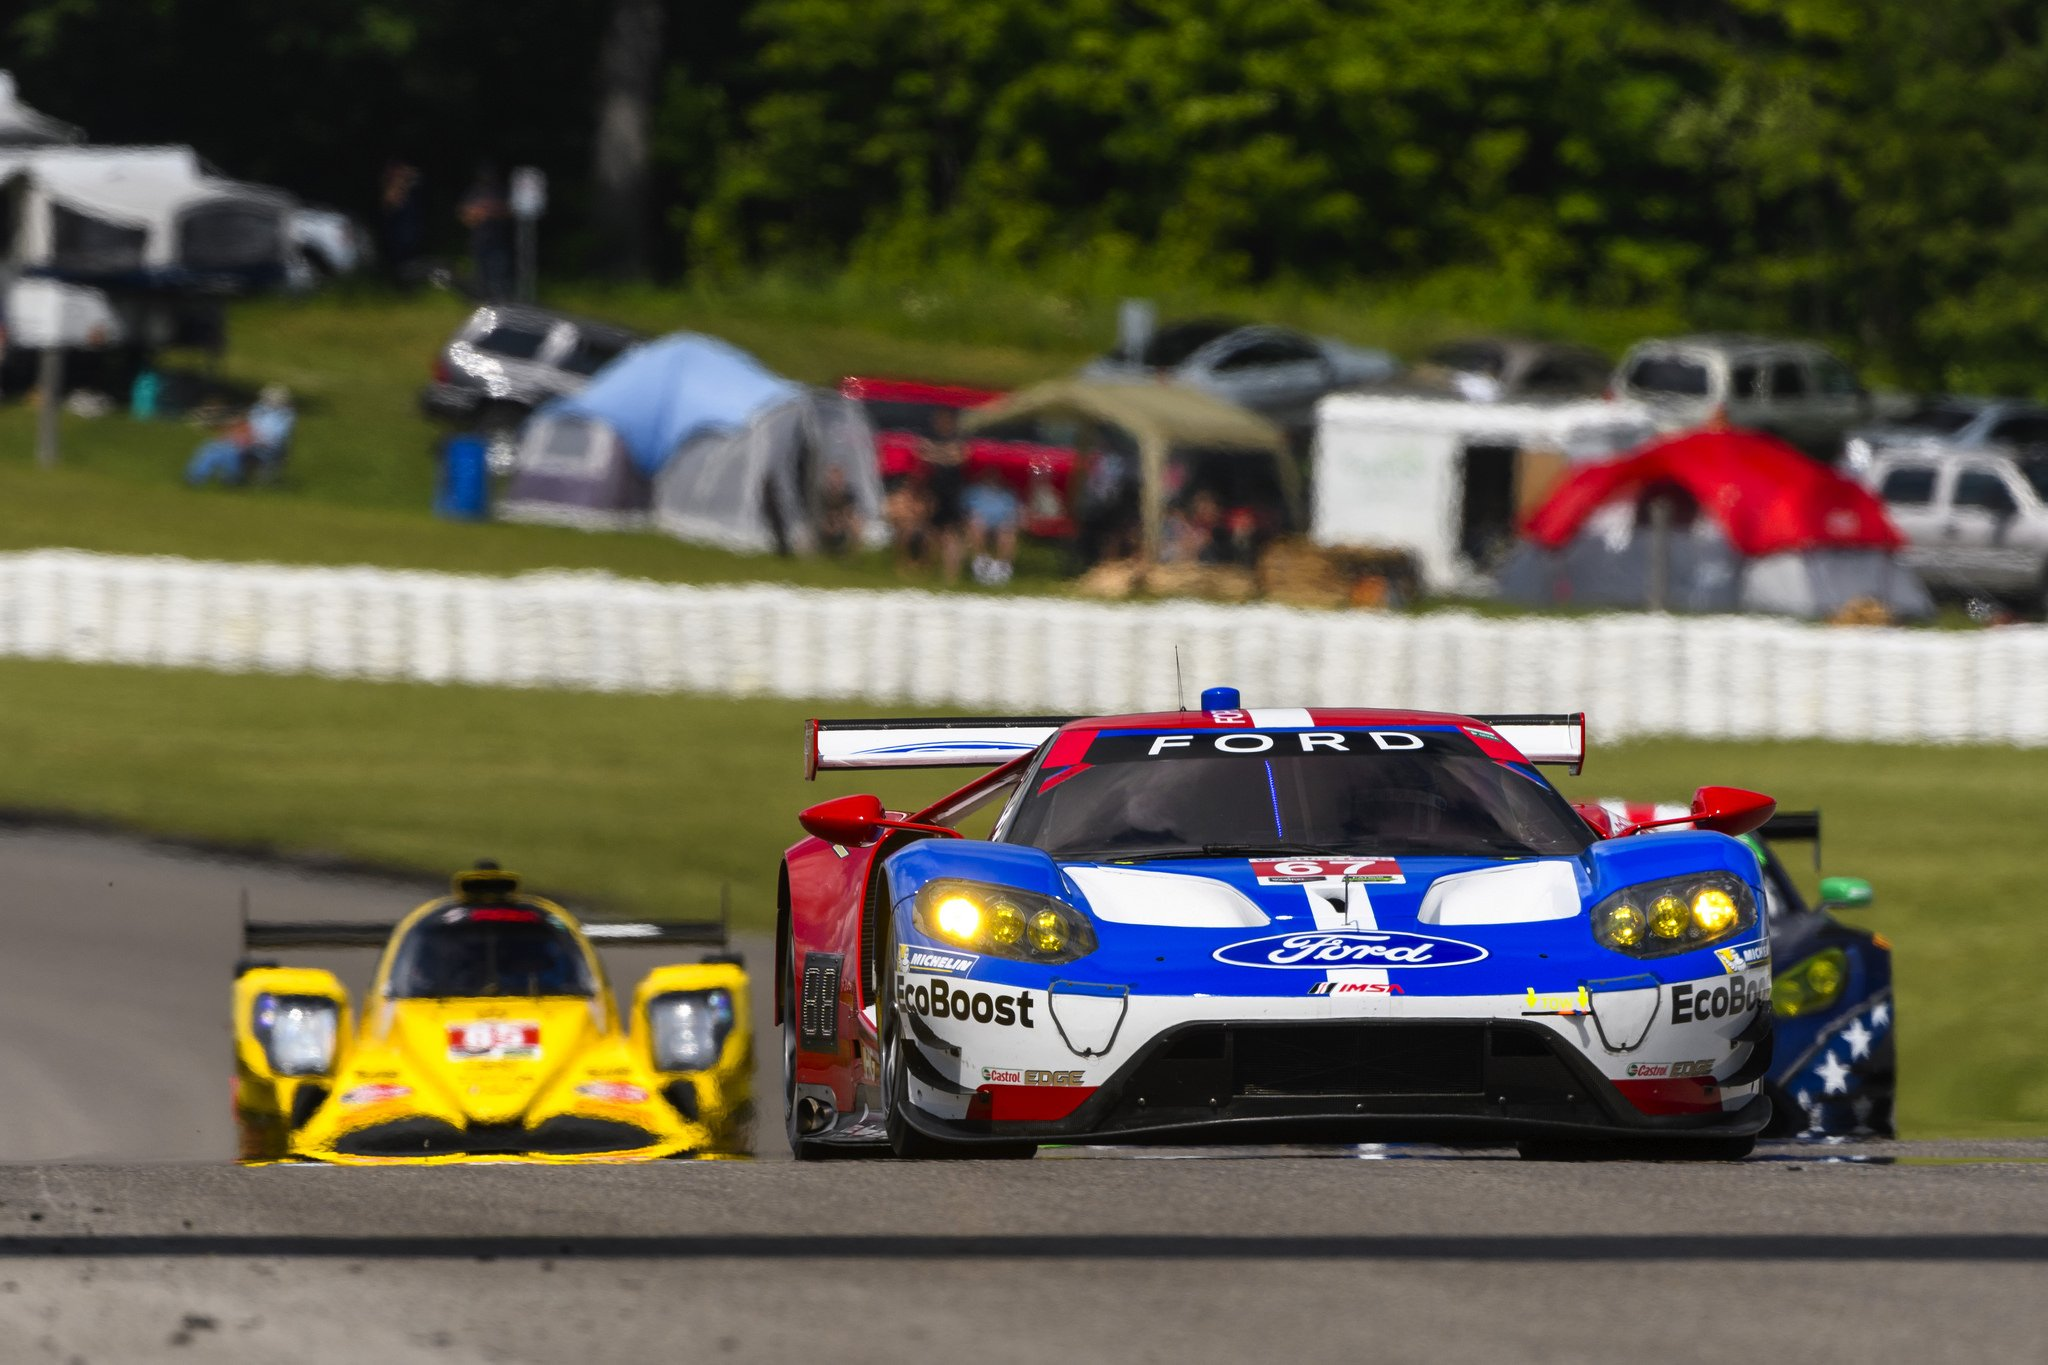 Ford GT Takes Third Place in Home Race